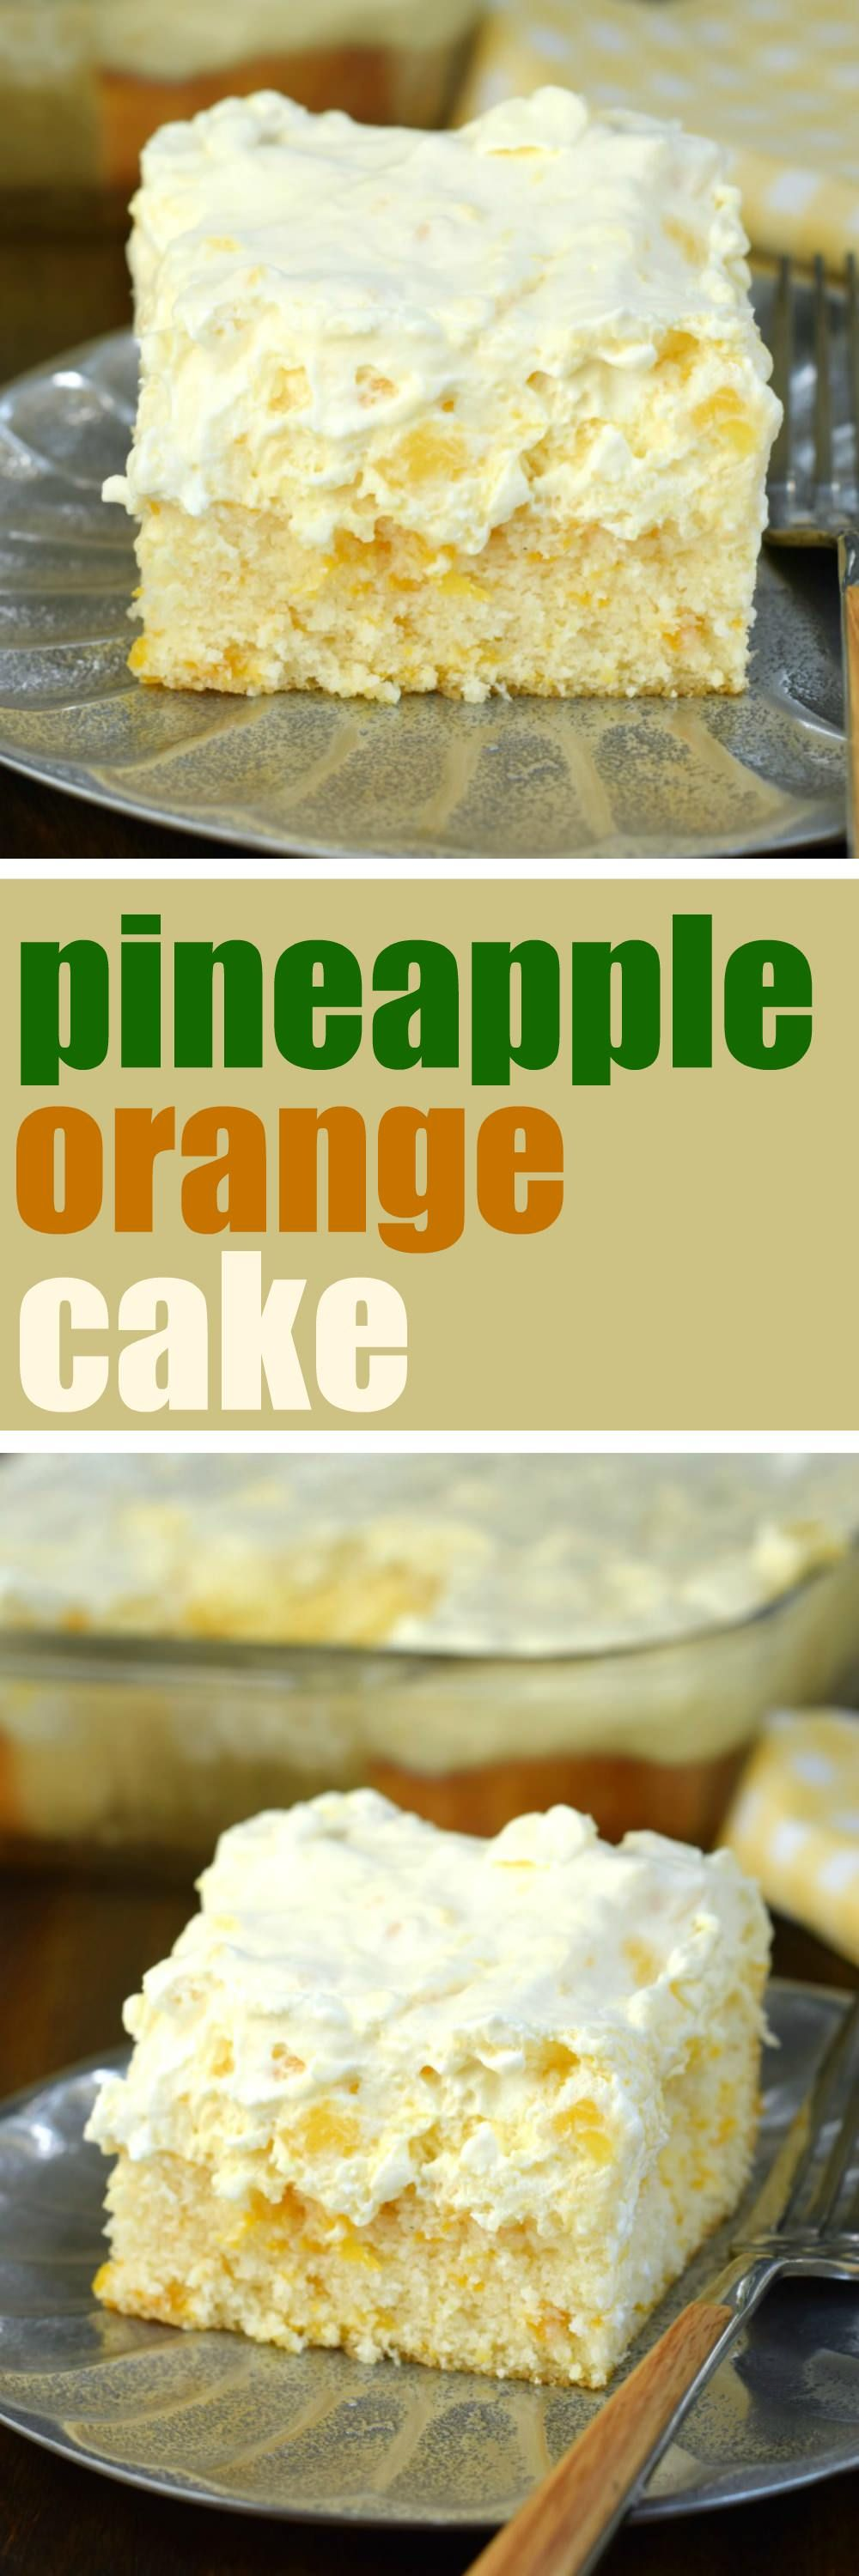 Charming Pineapple Orange Cake Is An Easy, Light Dessert Recipe Thatu0027s Nearly Guilt  Free! Youu0027ll Love The Refreshing, Moist Orange Cake Topped With Creamy  Pineapple ... Awesome Design